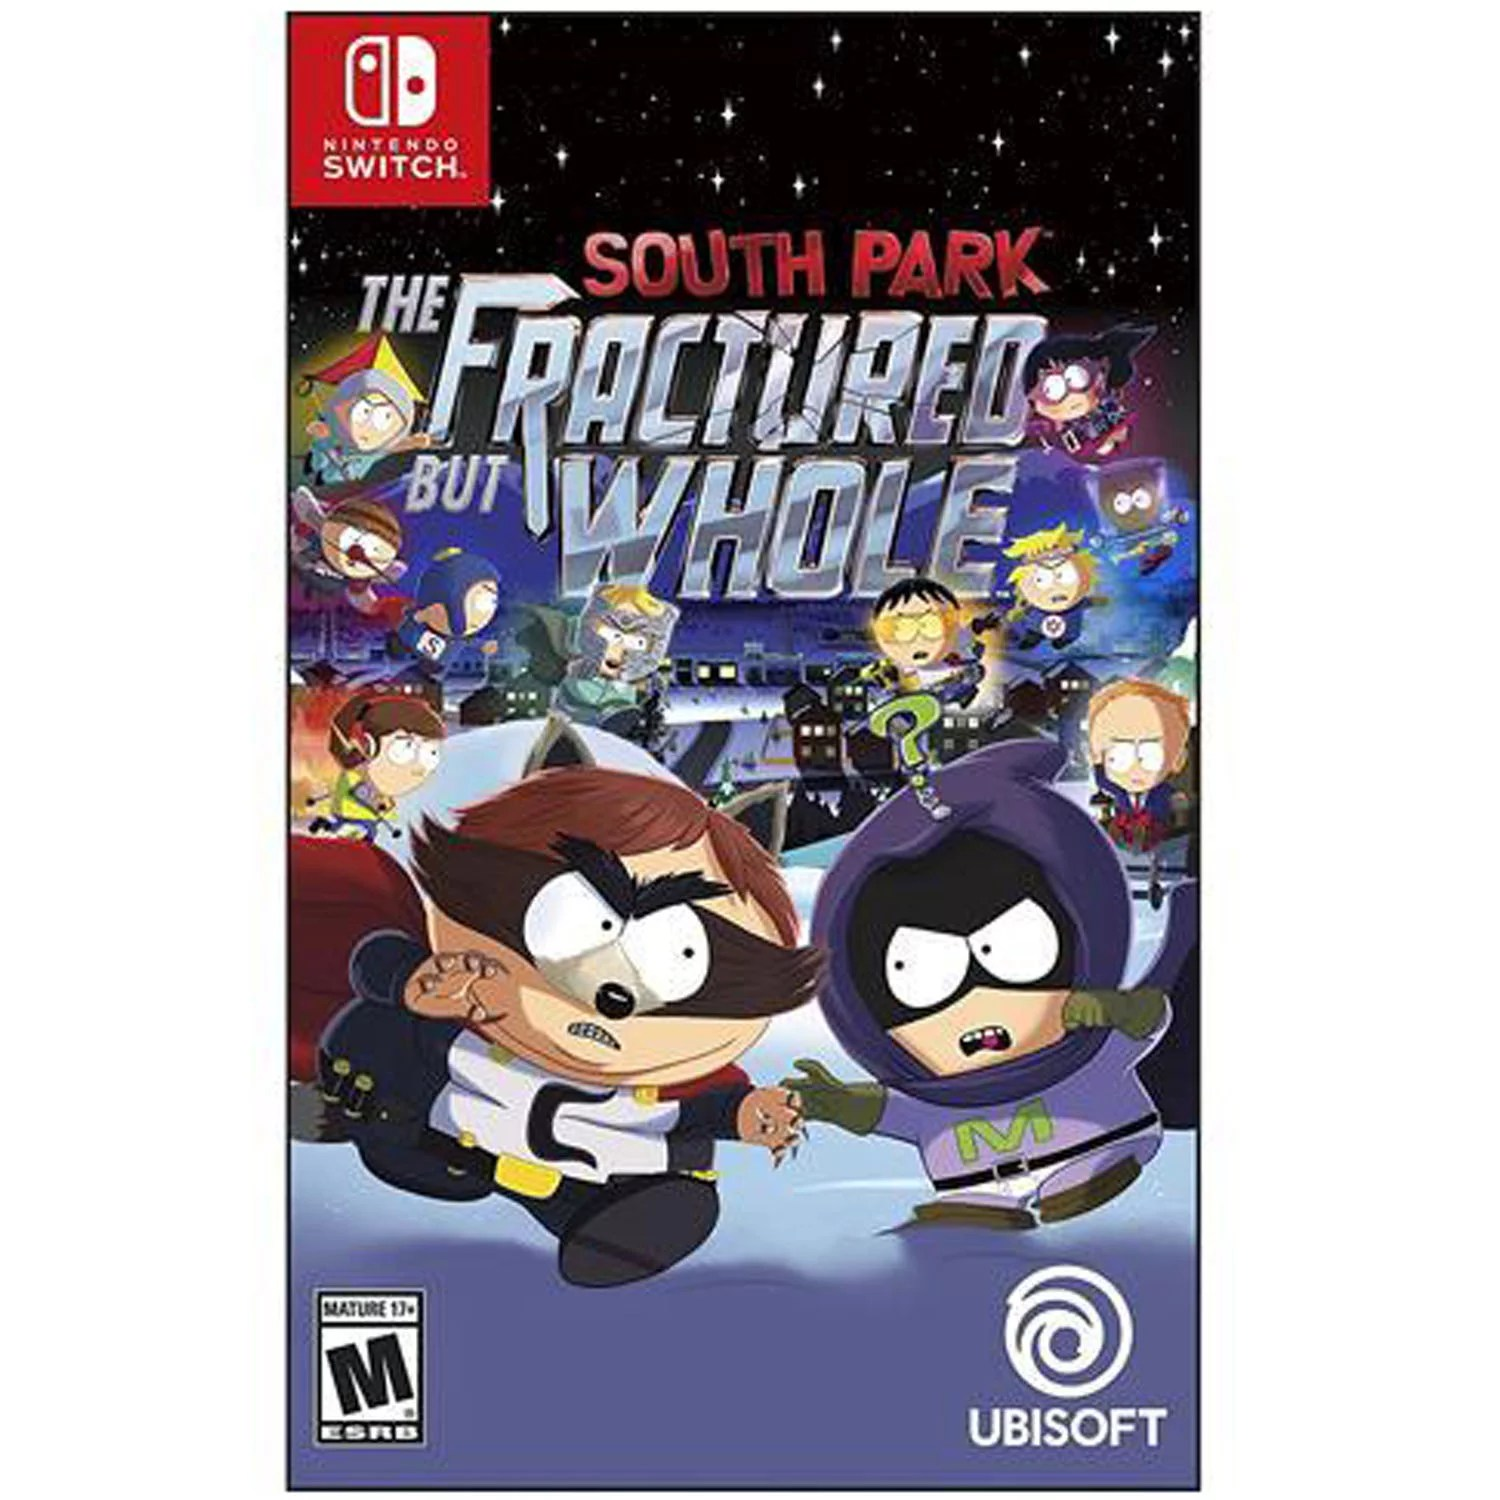 South Park The Fractured But Whole Ubisoft Nintendo